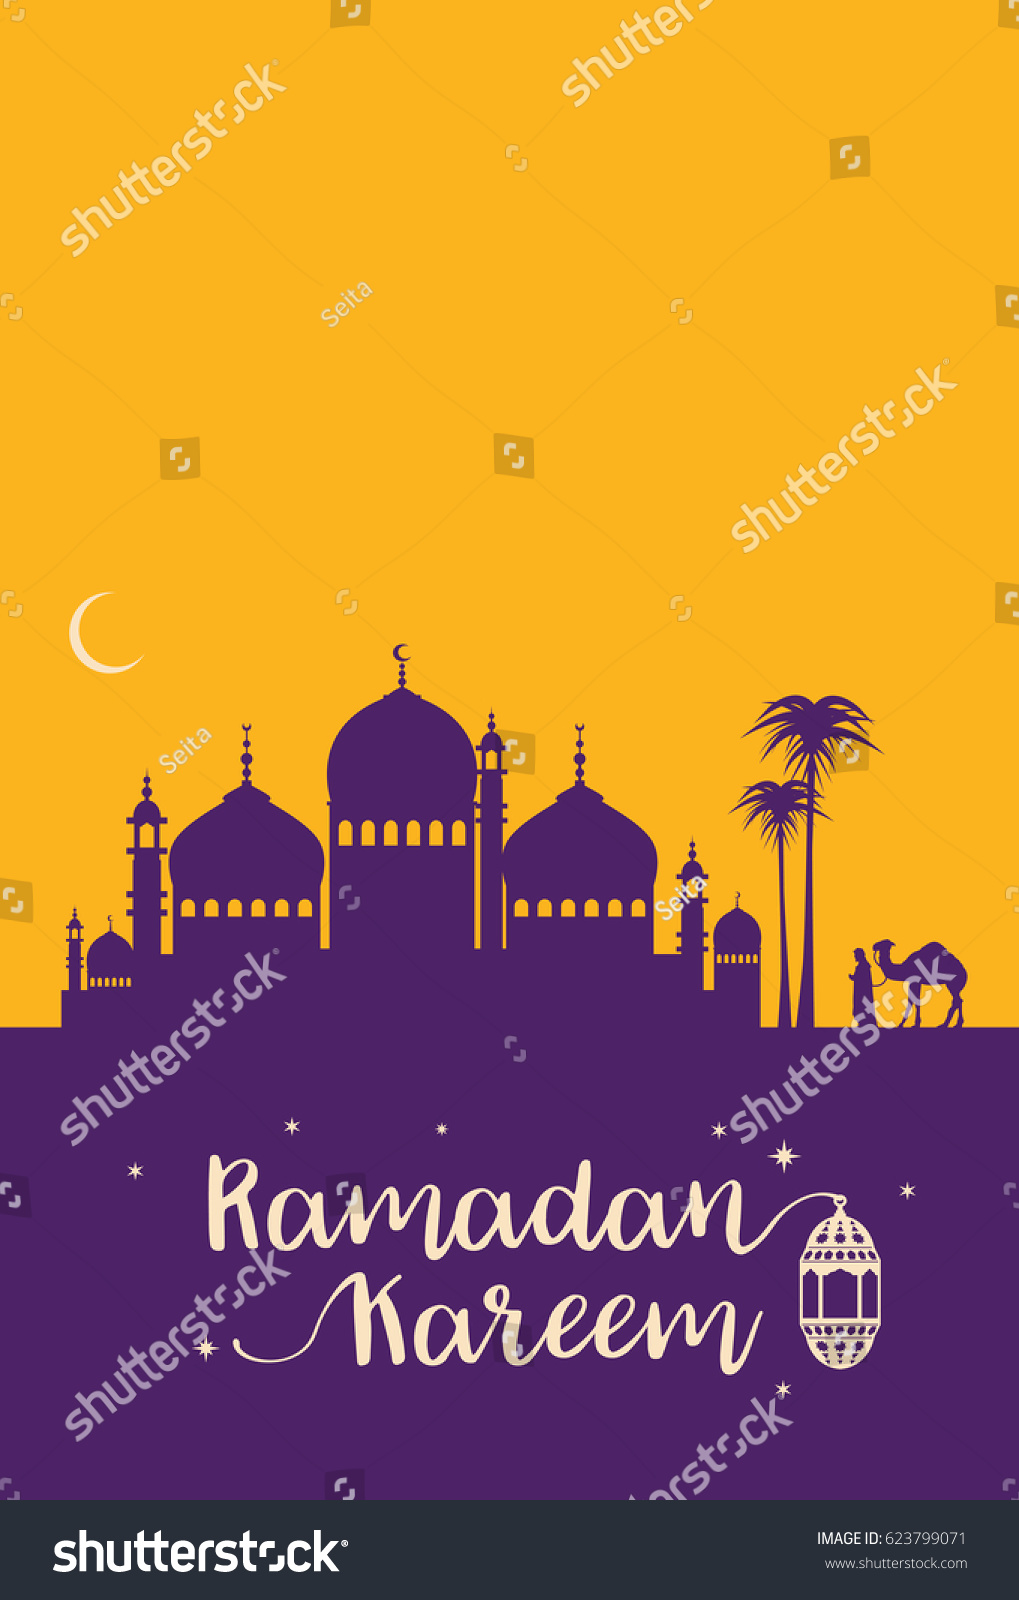 Ramadan Kareem Greeting Card Mosque Silhouette Stock Vector Royalty